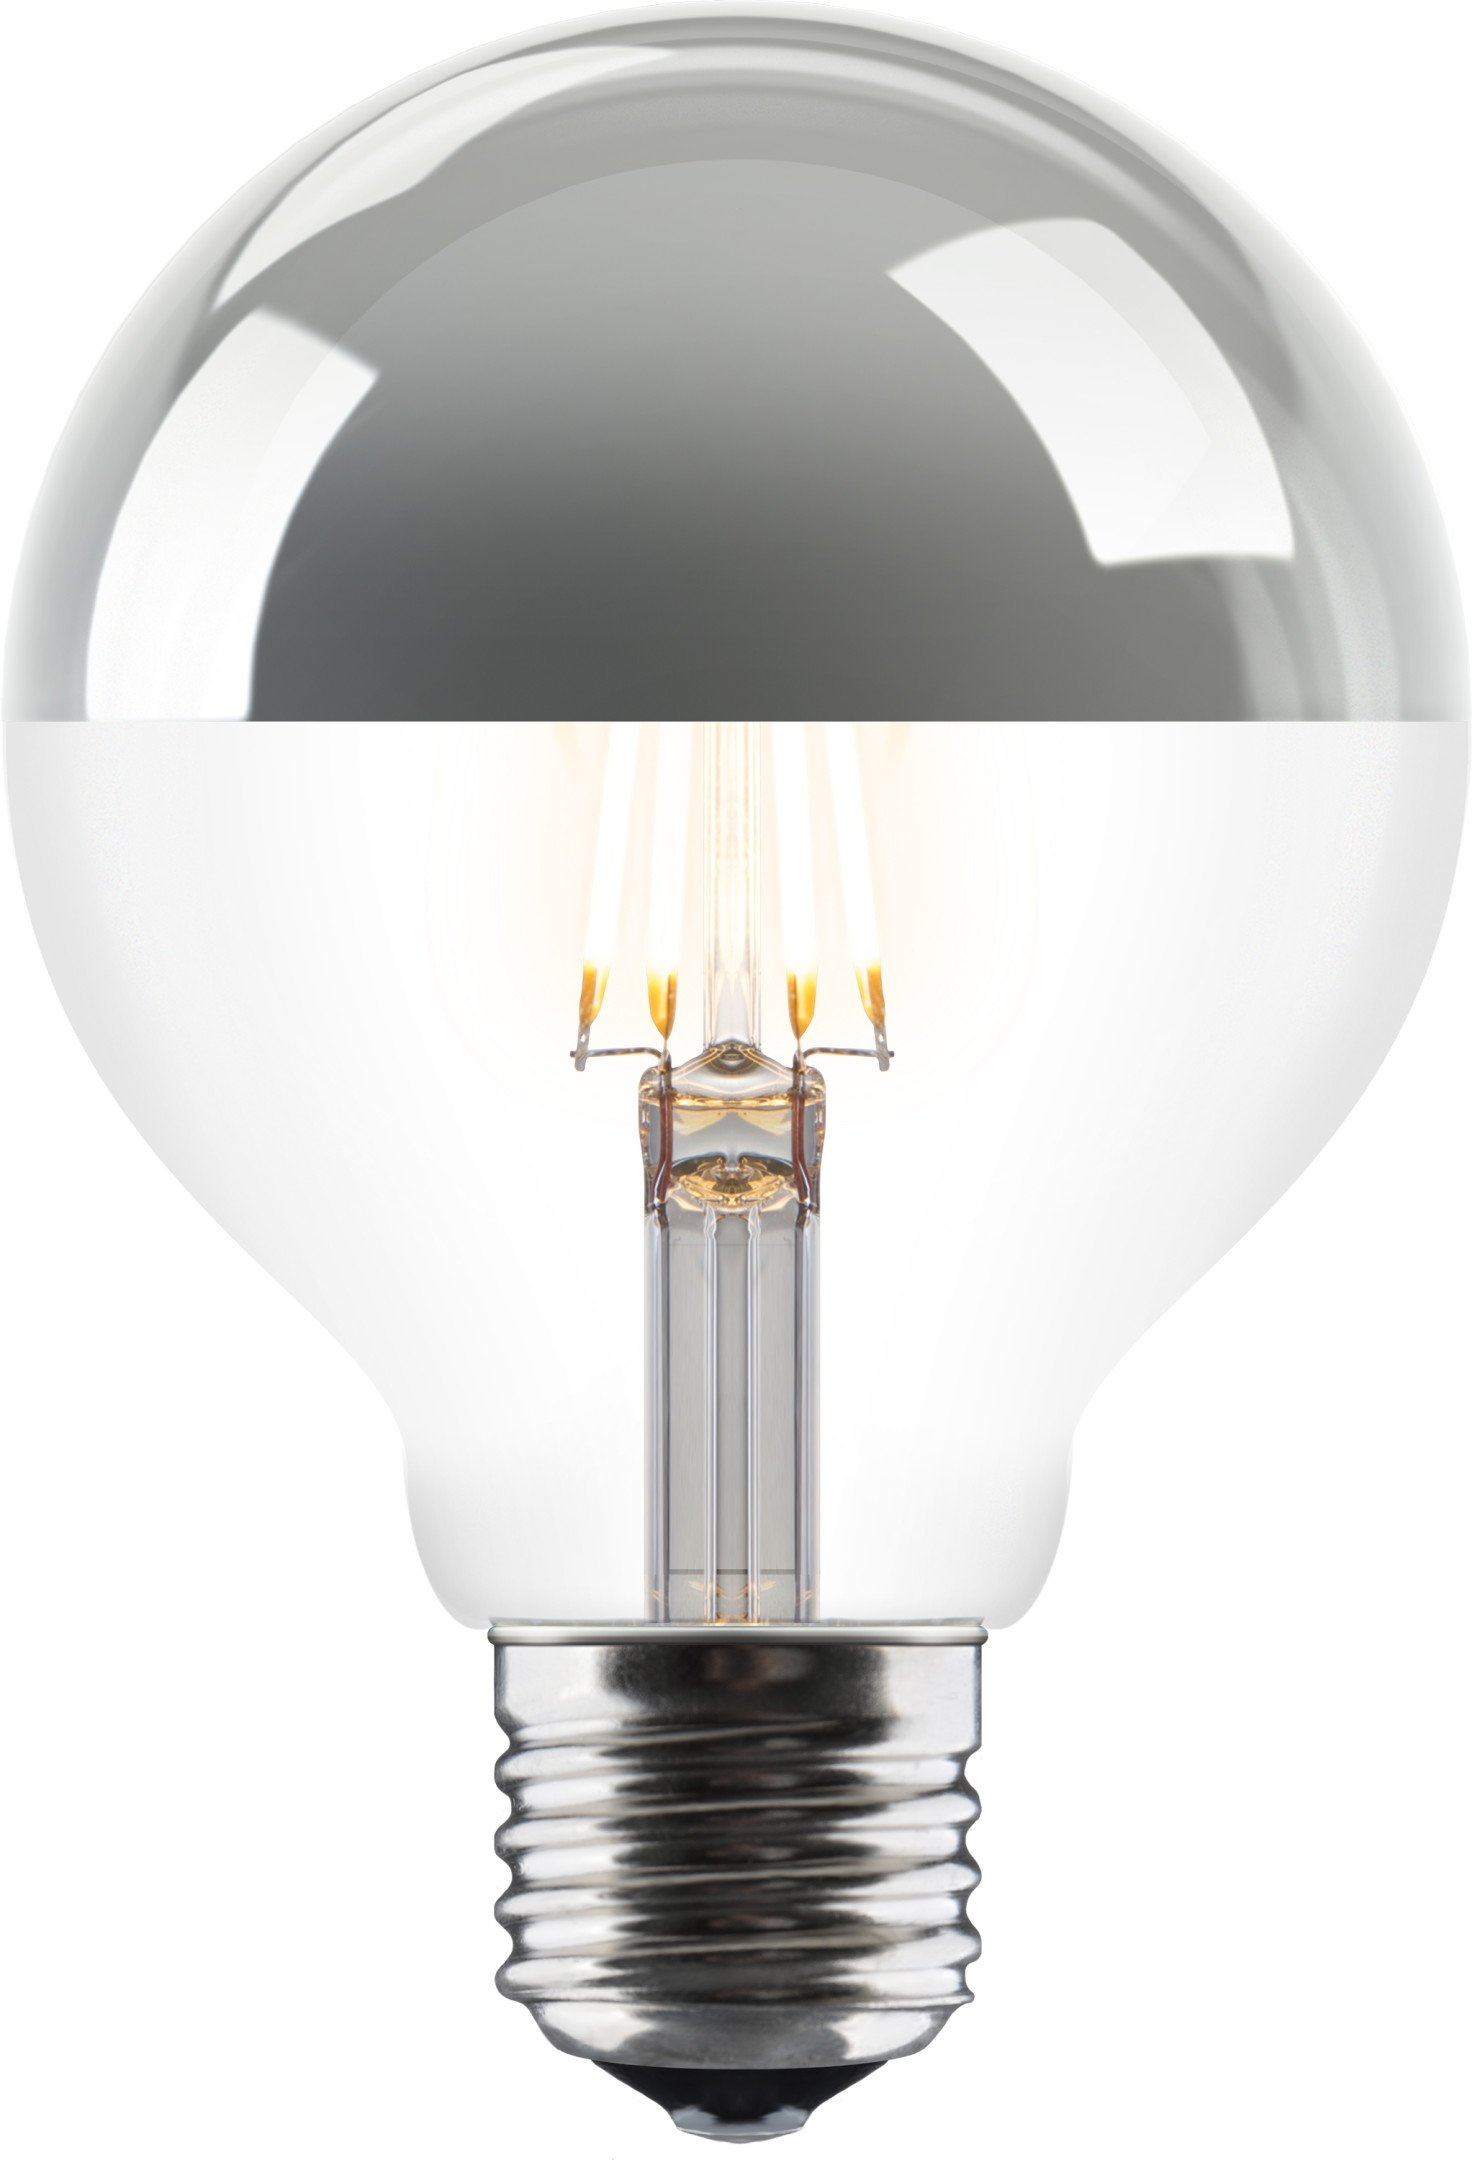 Idea Mirror LED A++ 80 mm 6W Lightbulb, UMAGE - 495860 - photo